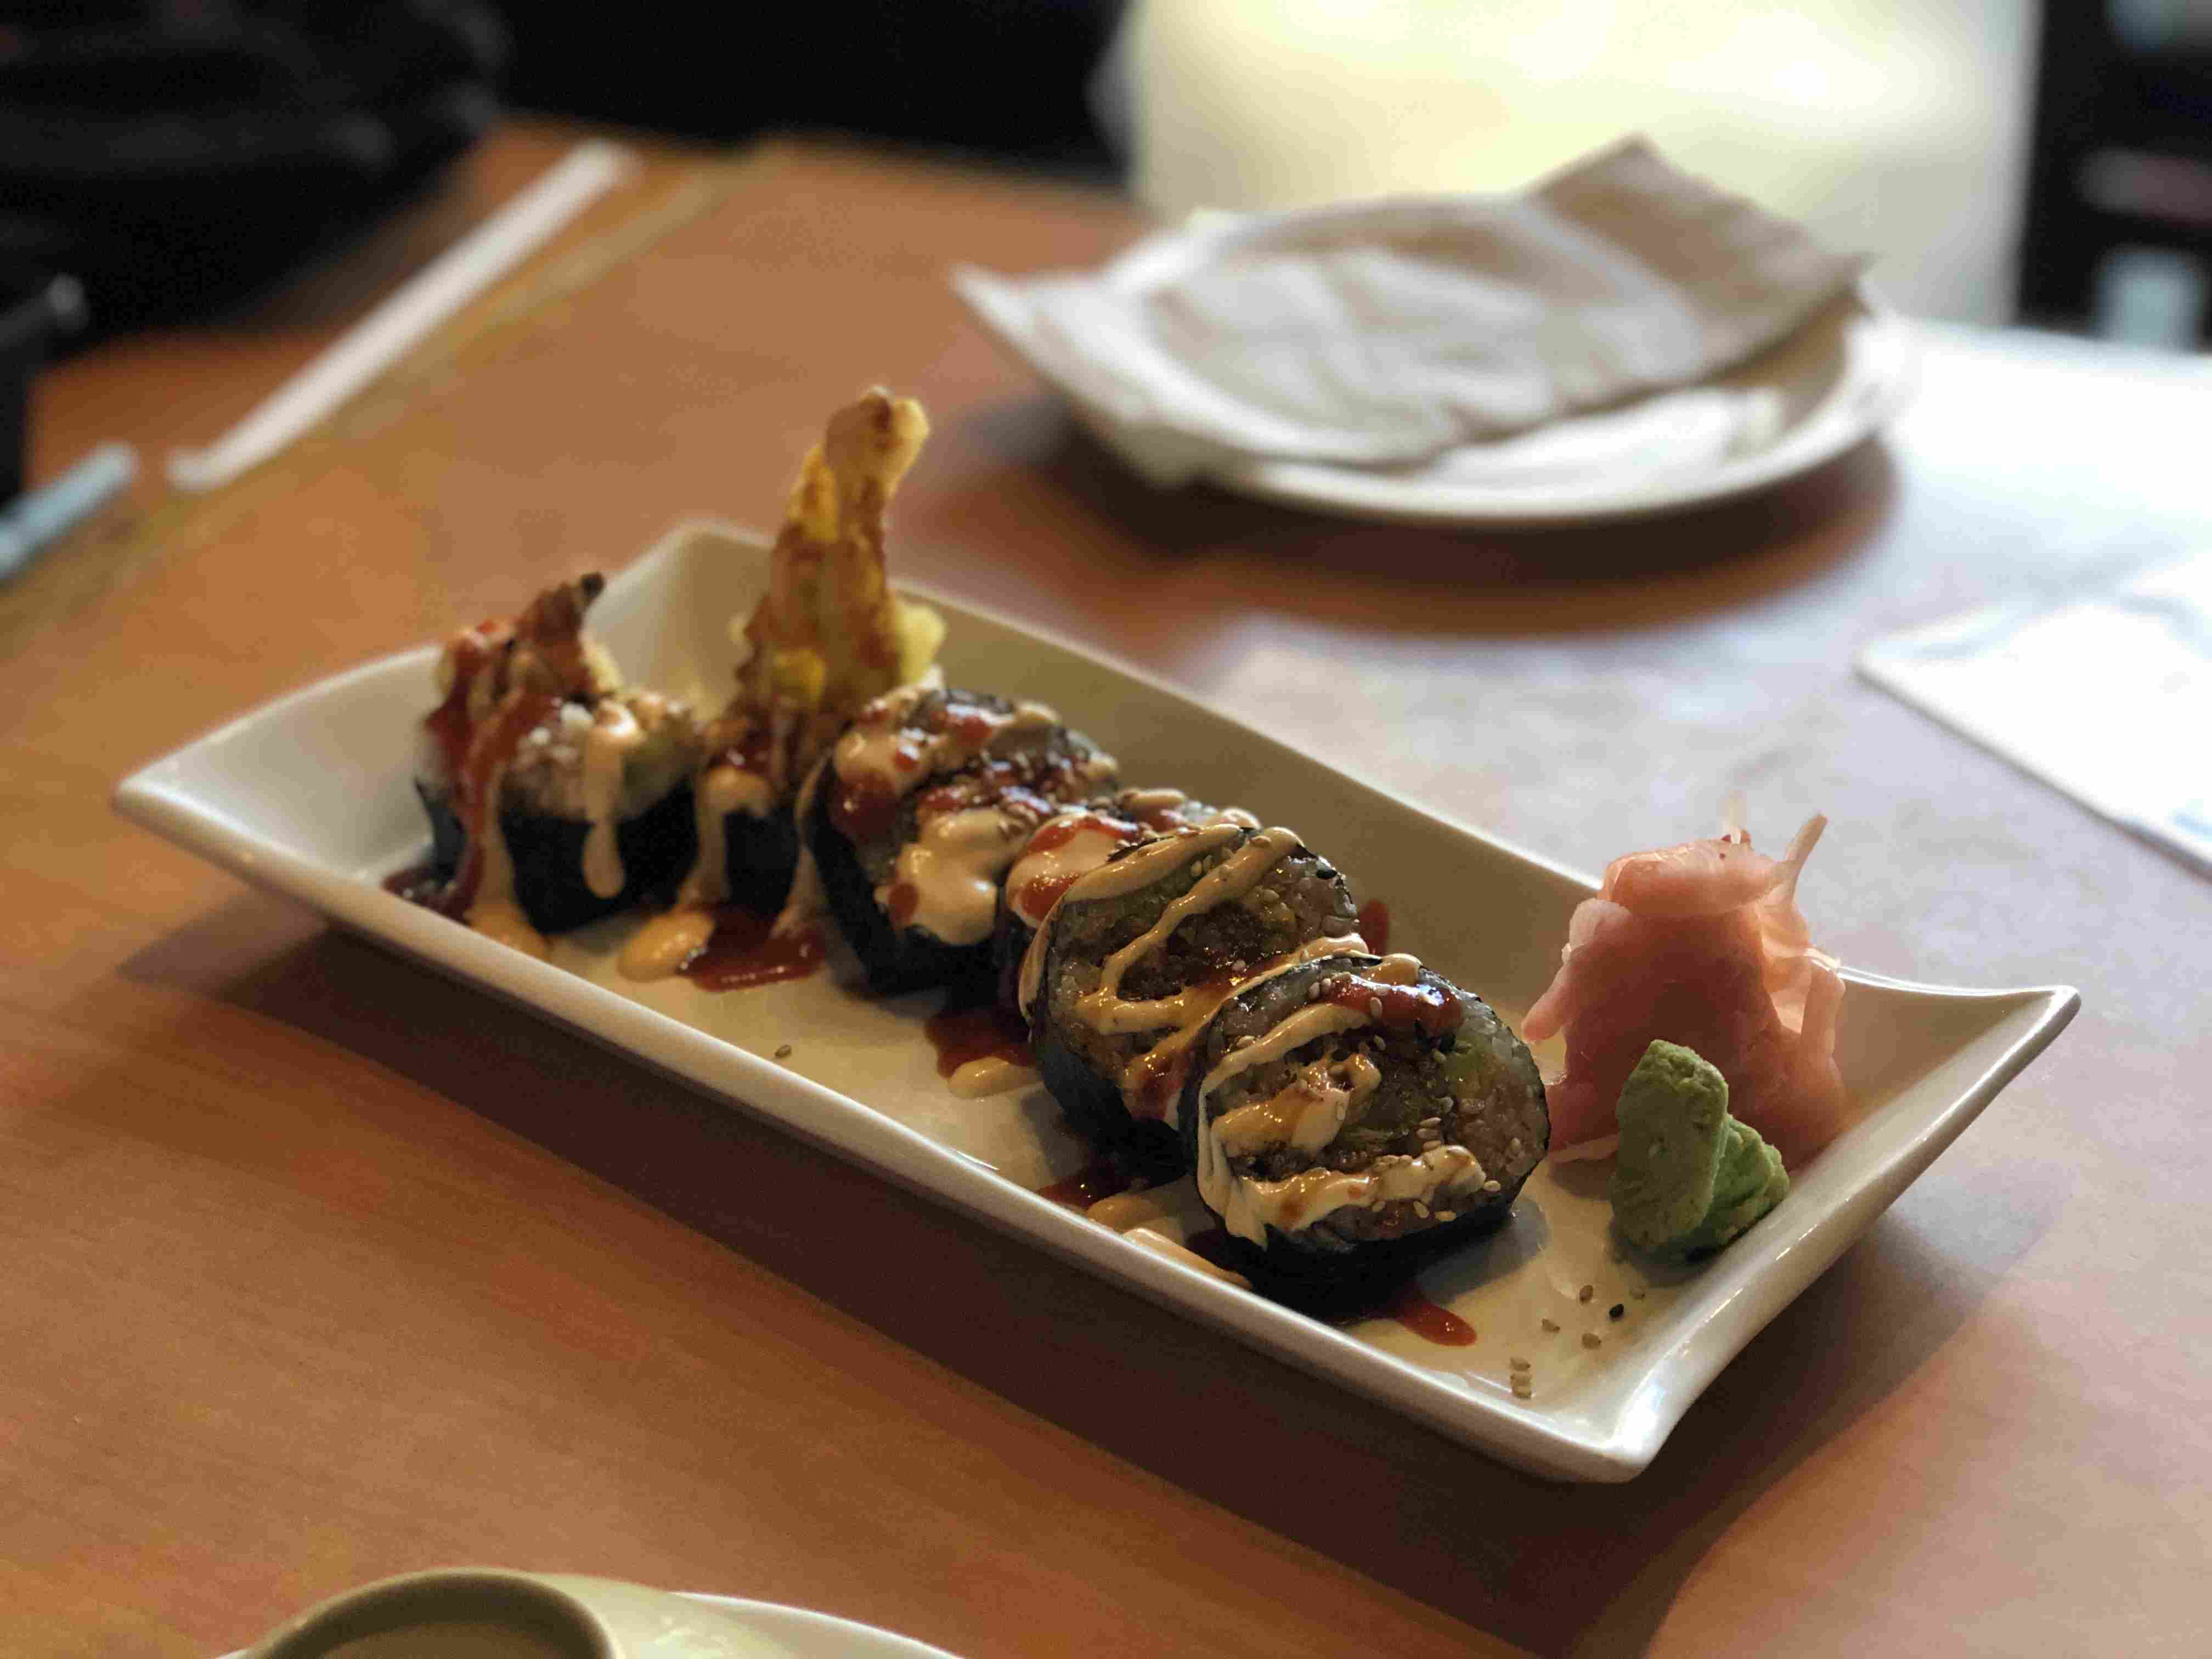 New Mexico Roll at Sushi King